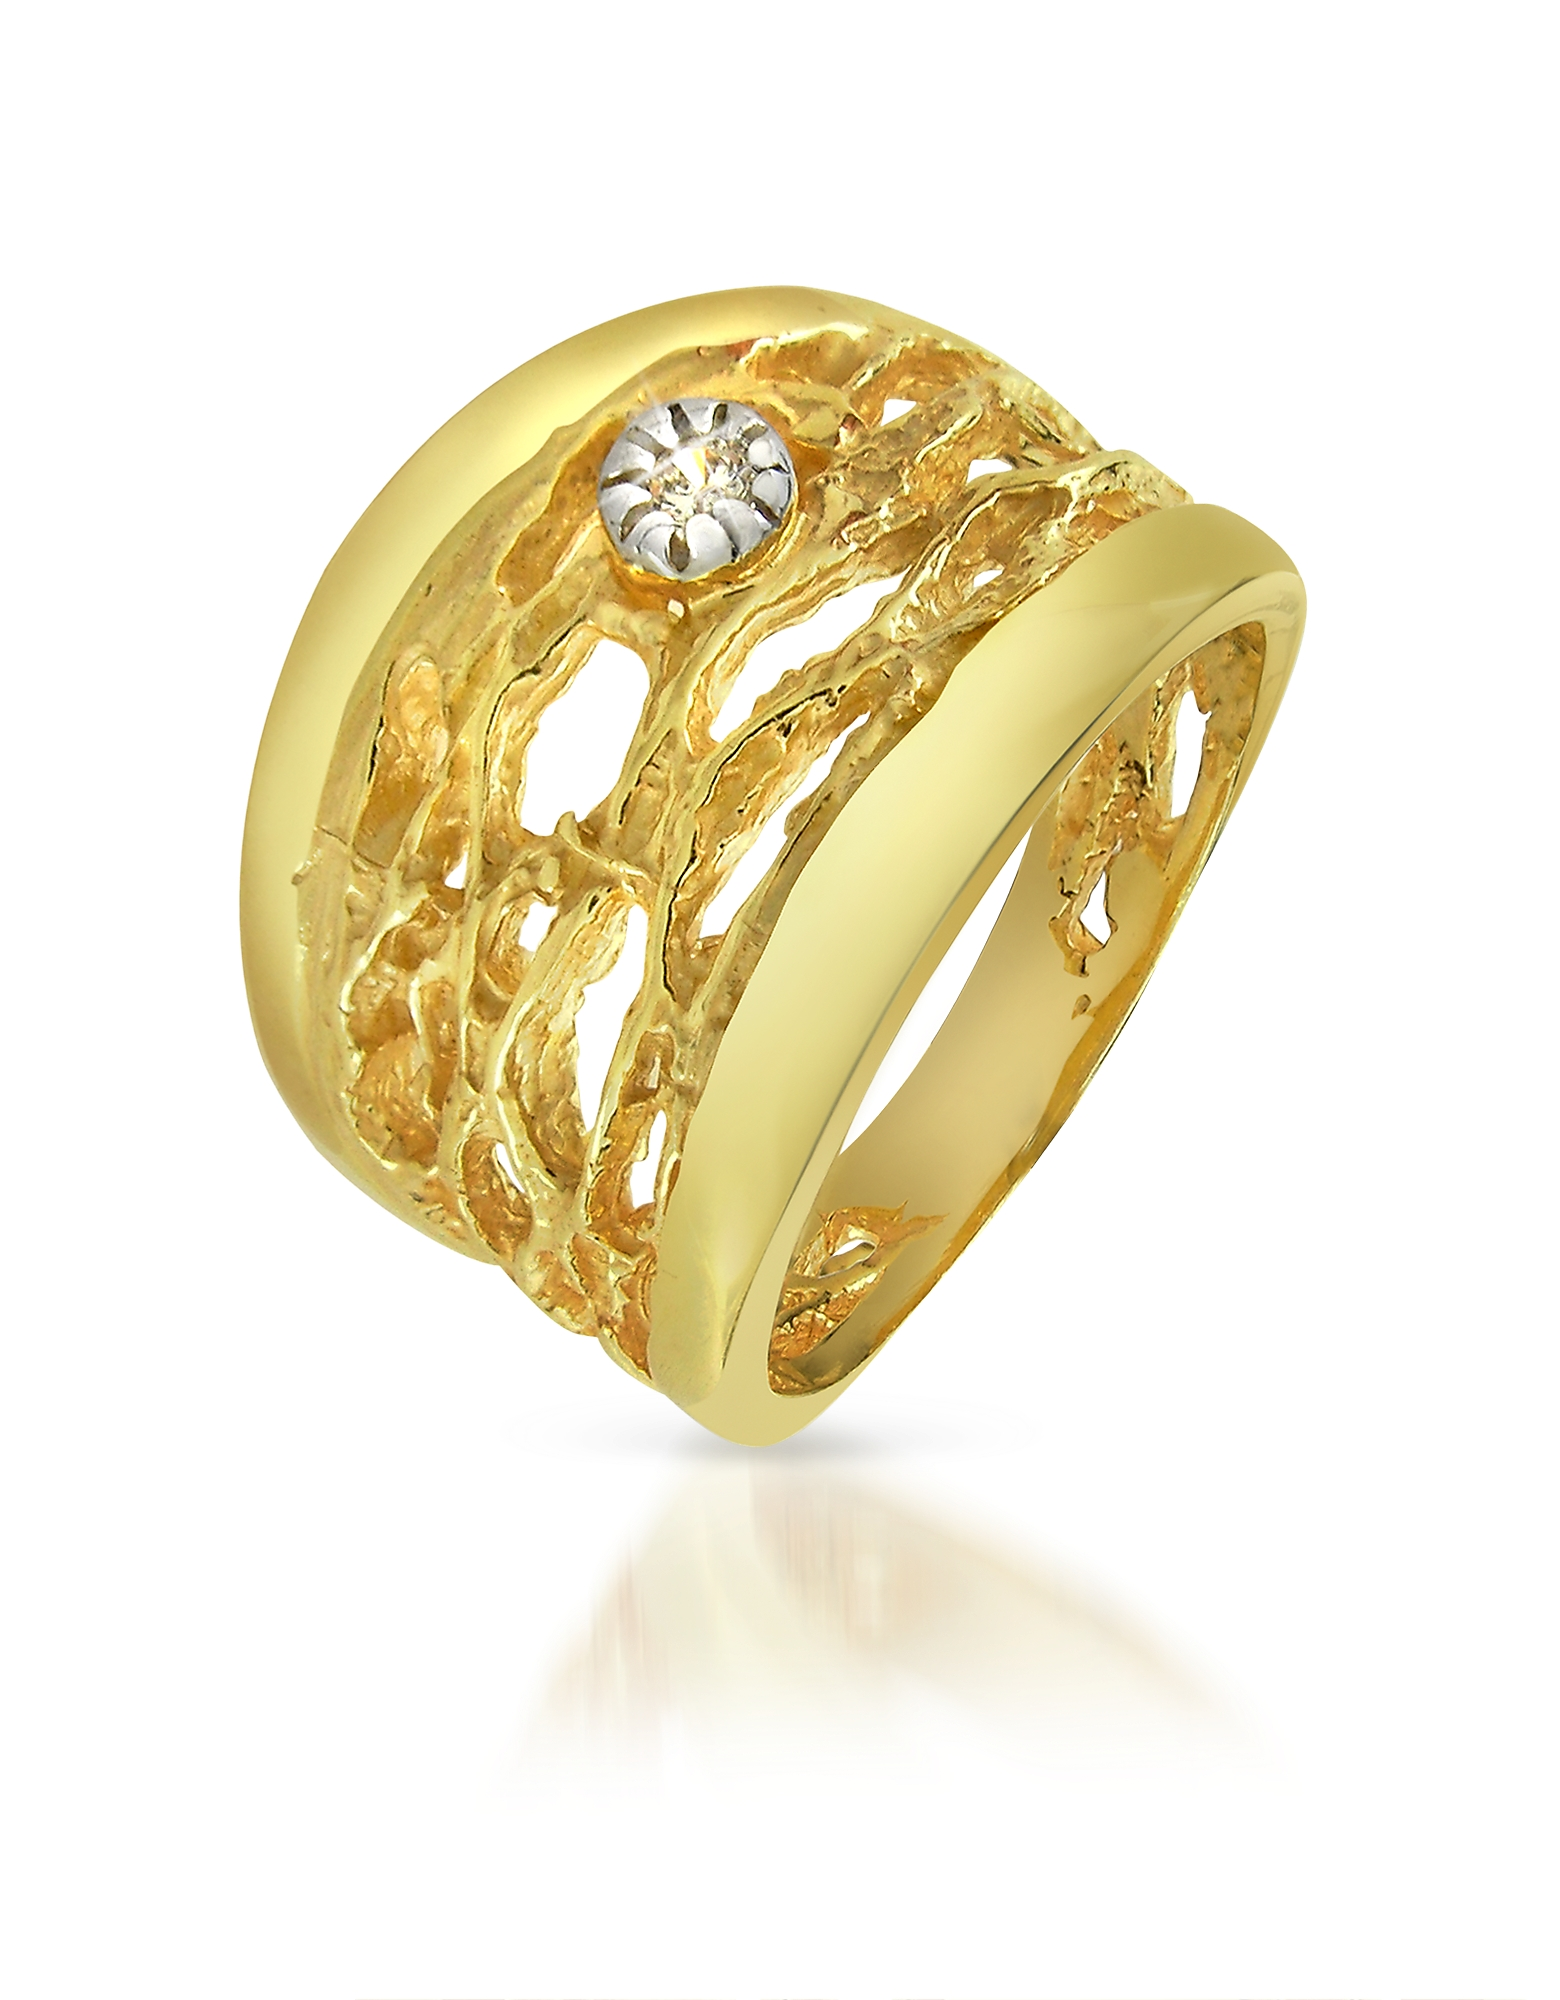 Orlando Orlandini Rings, Diamond Open-work 18K Yellow Gold Band Ring